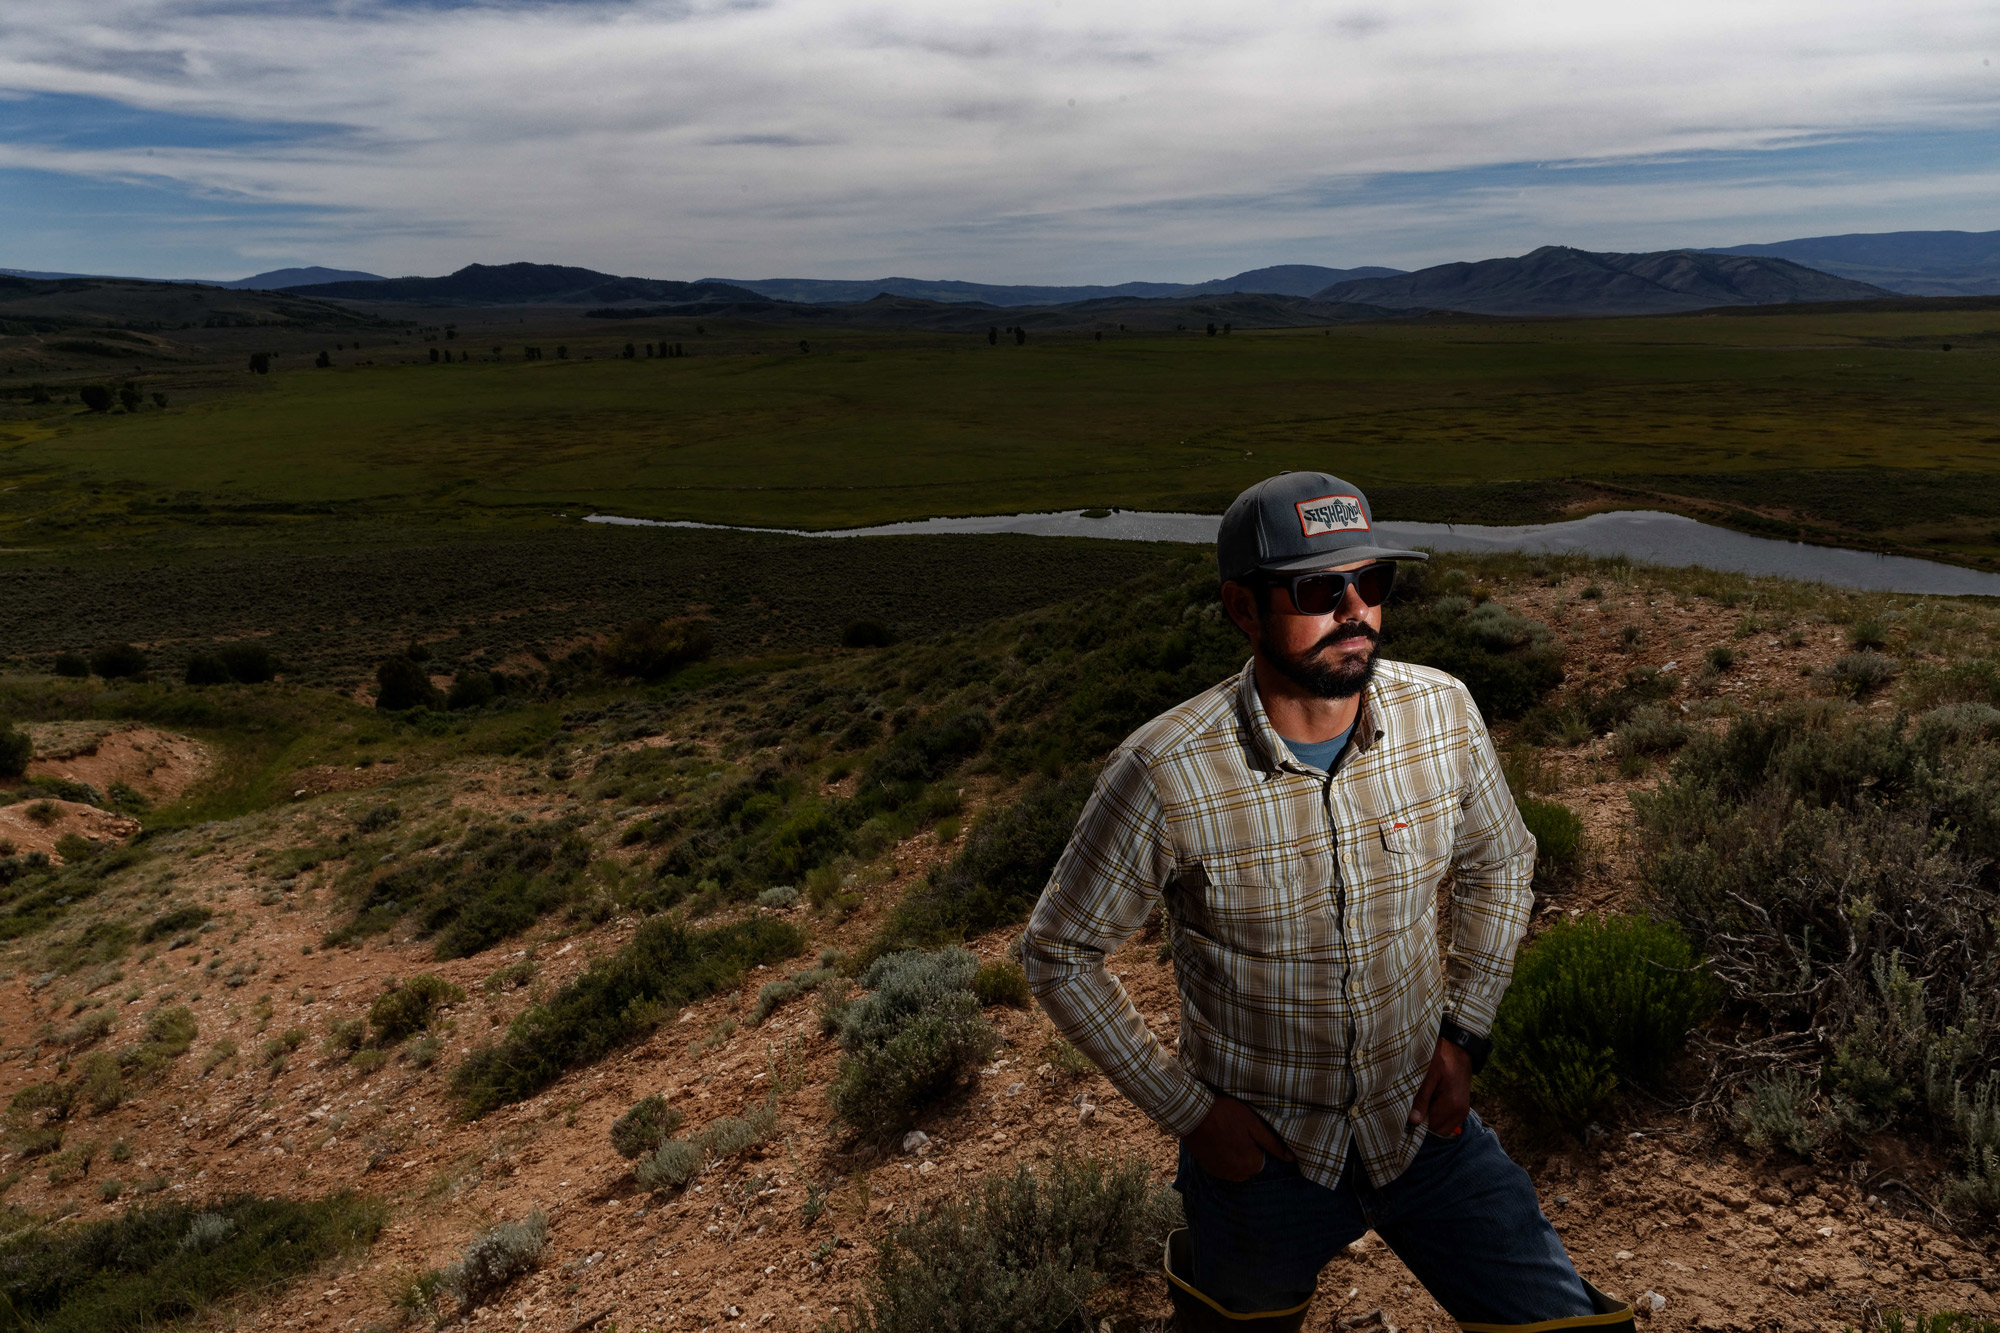 The Rancher Trying to Solve the West's Water Crisis